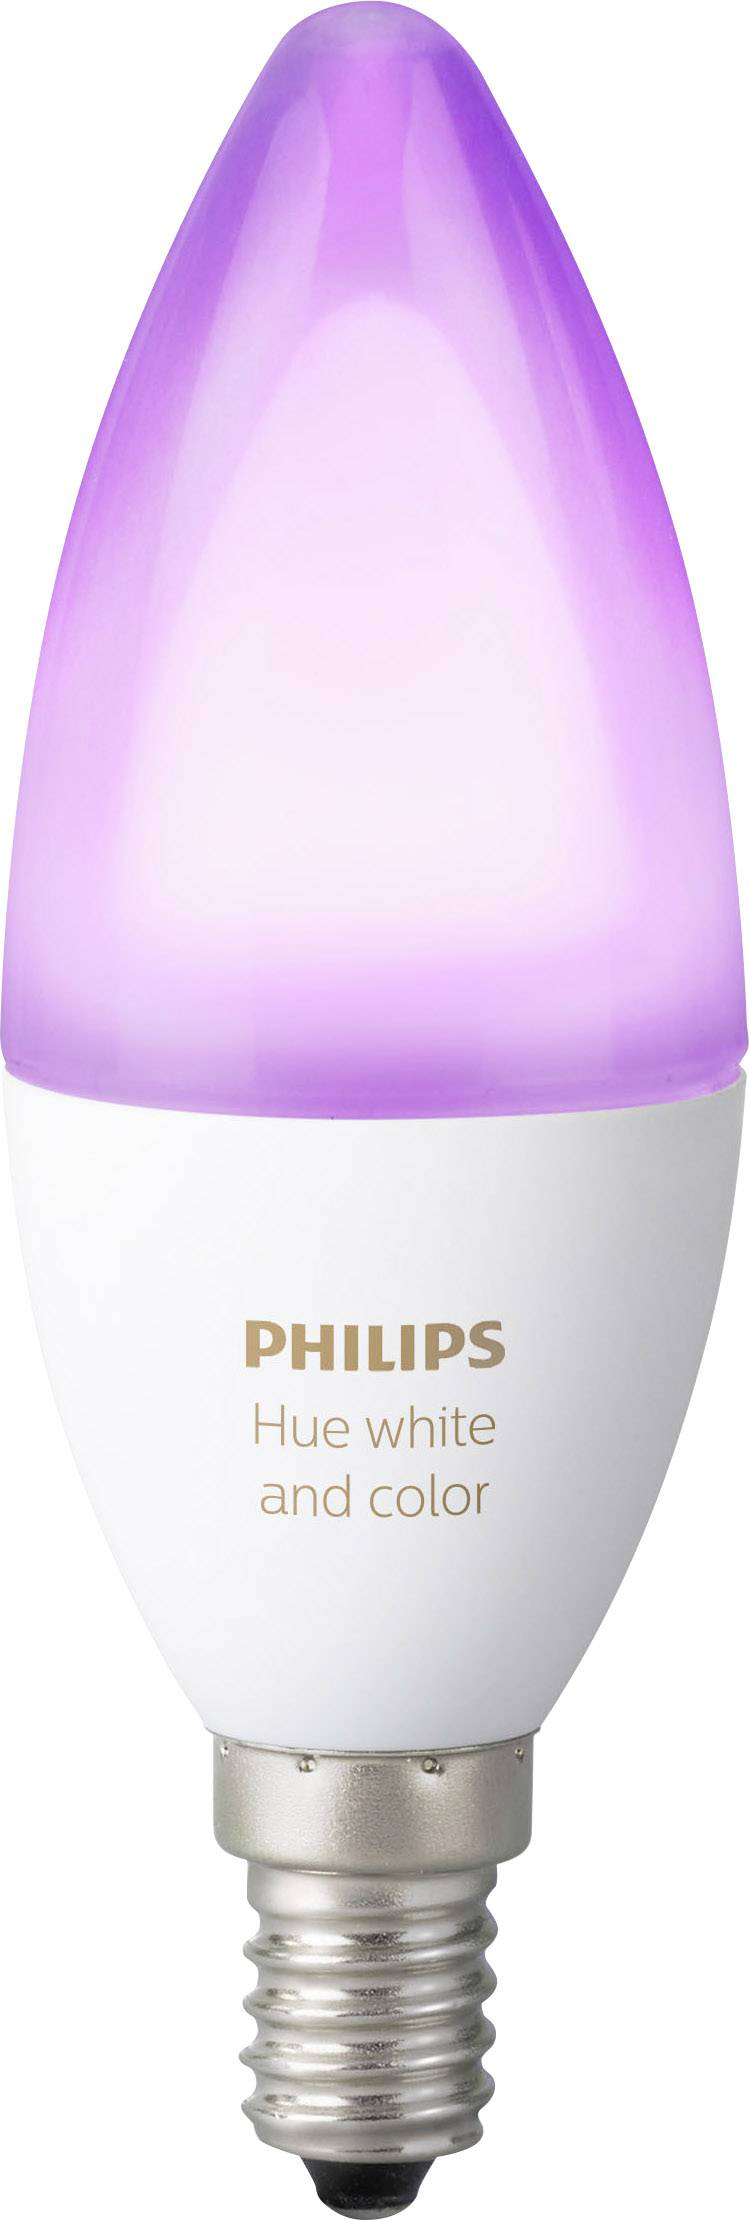 E14 Leuchtmittel Philips Lighting Hue Led Leuchtmittel Einzeln White And Color Ambiance Eek A A E E14 6 5w Rgbw